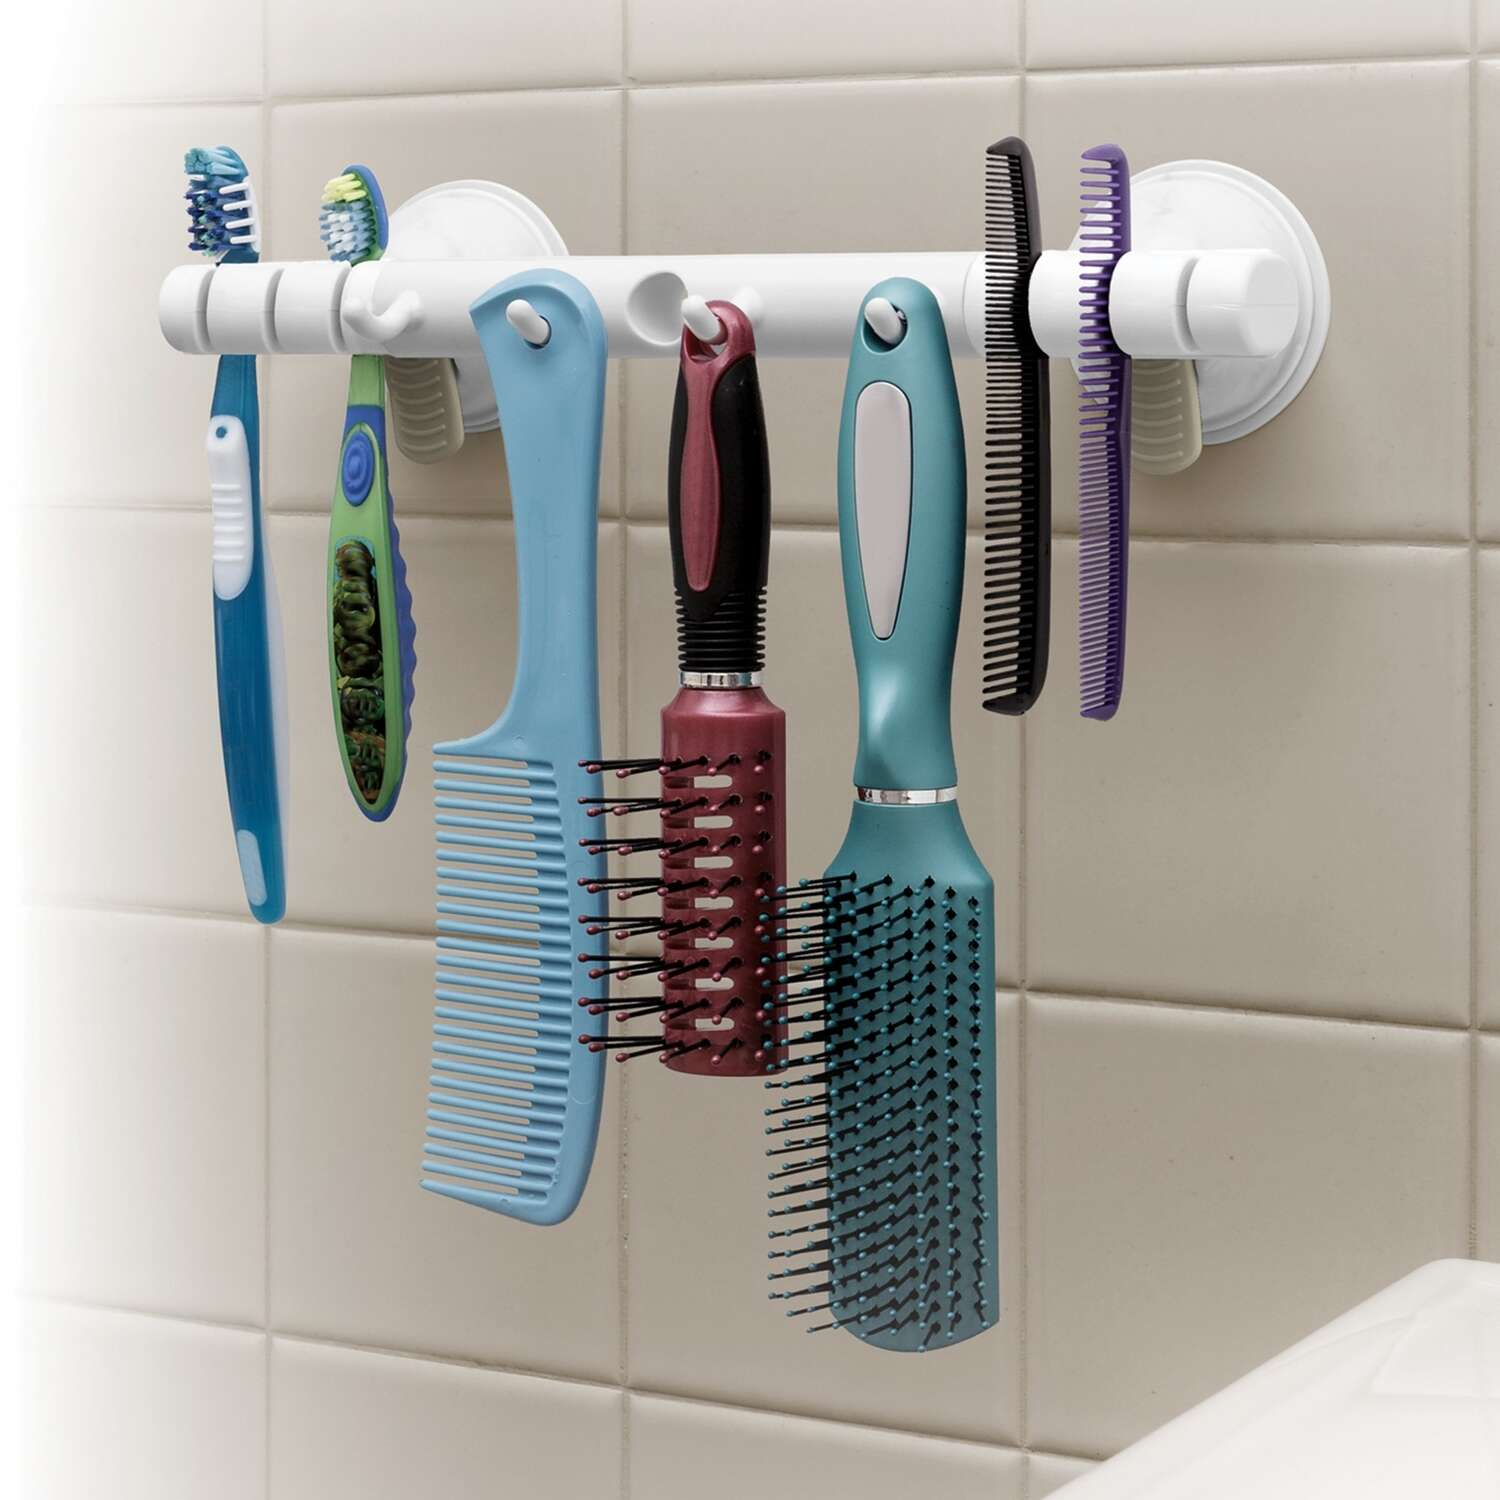 Safe-Er-Grip  Caddy/Razor/Toothbrush Holder  11.1 in. L x 2.5 in. H x 2.8 in. W White  Plastic  Brig